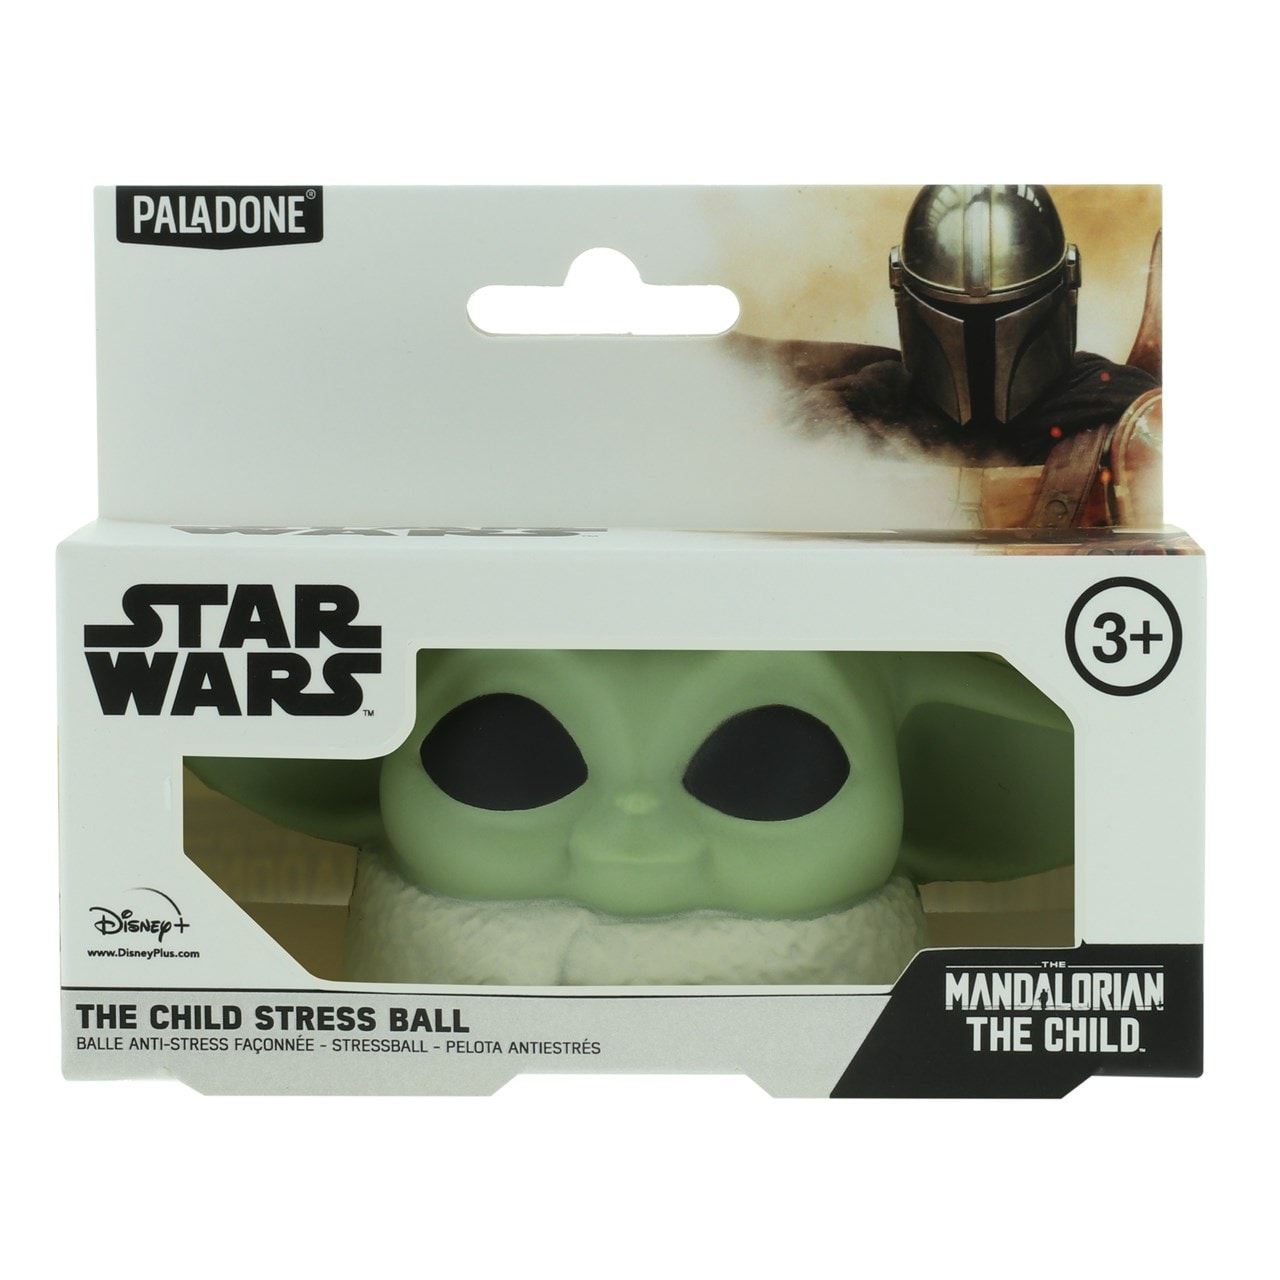 The Mandalorian: The Child Stress Ball: Star Wars - 4